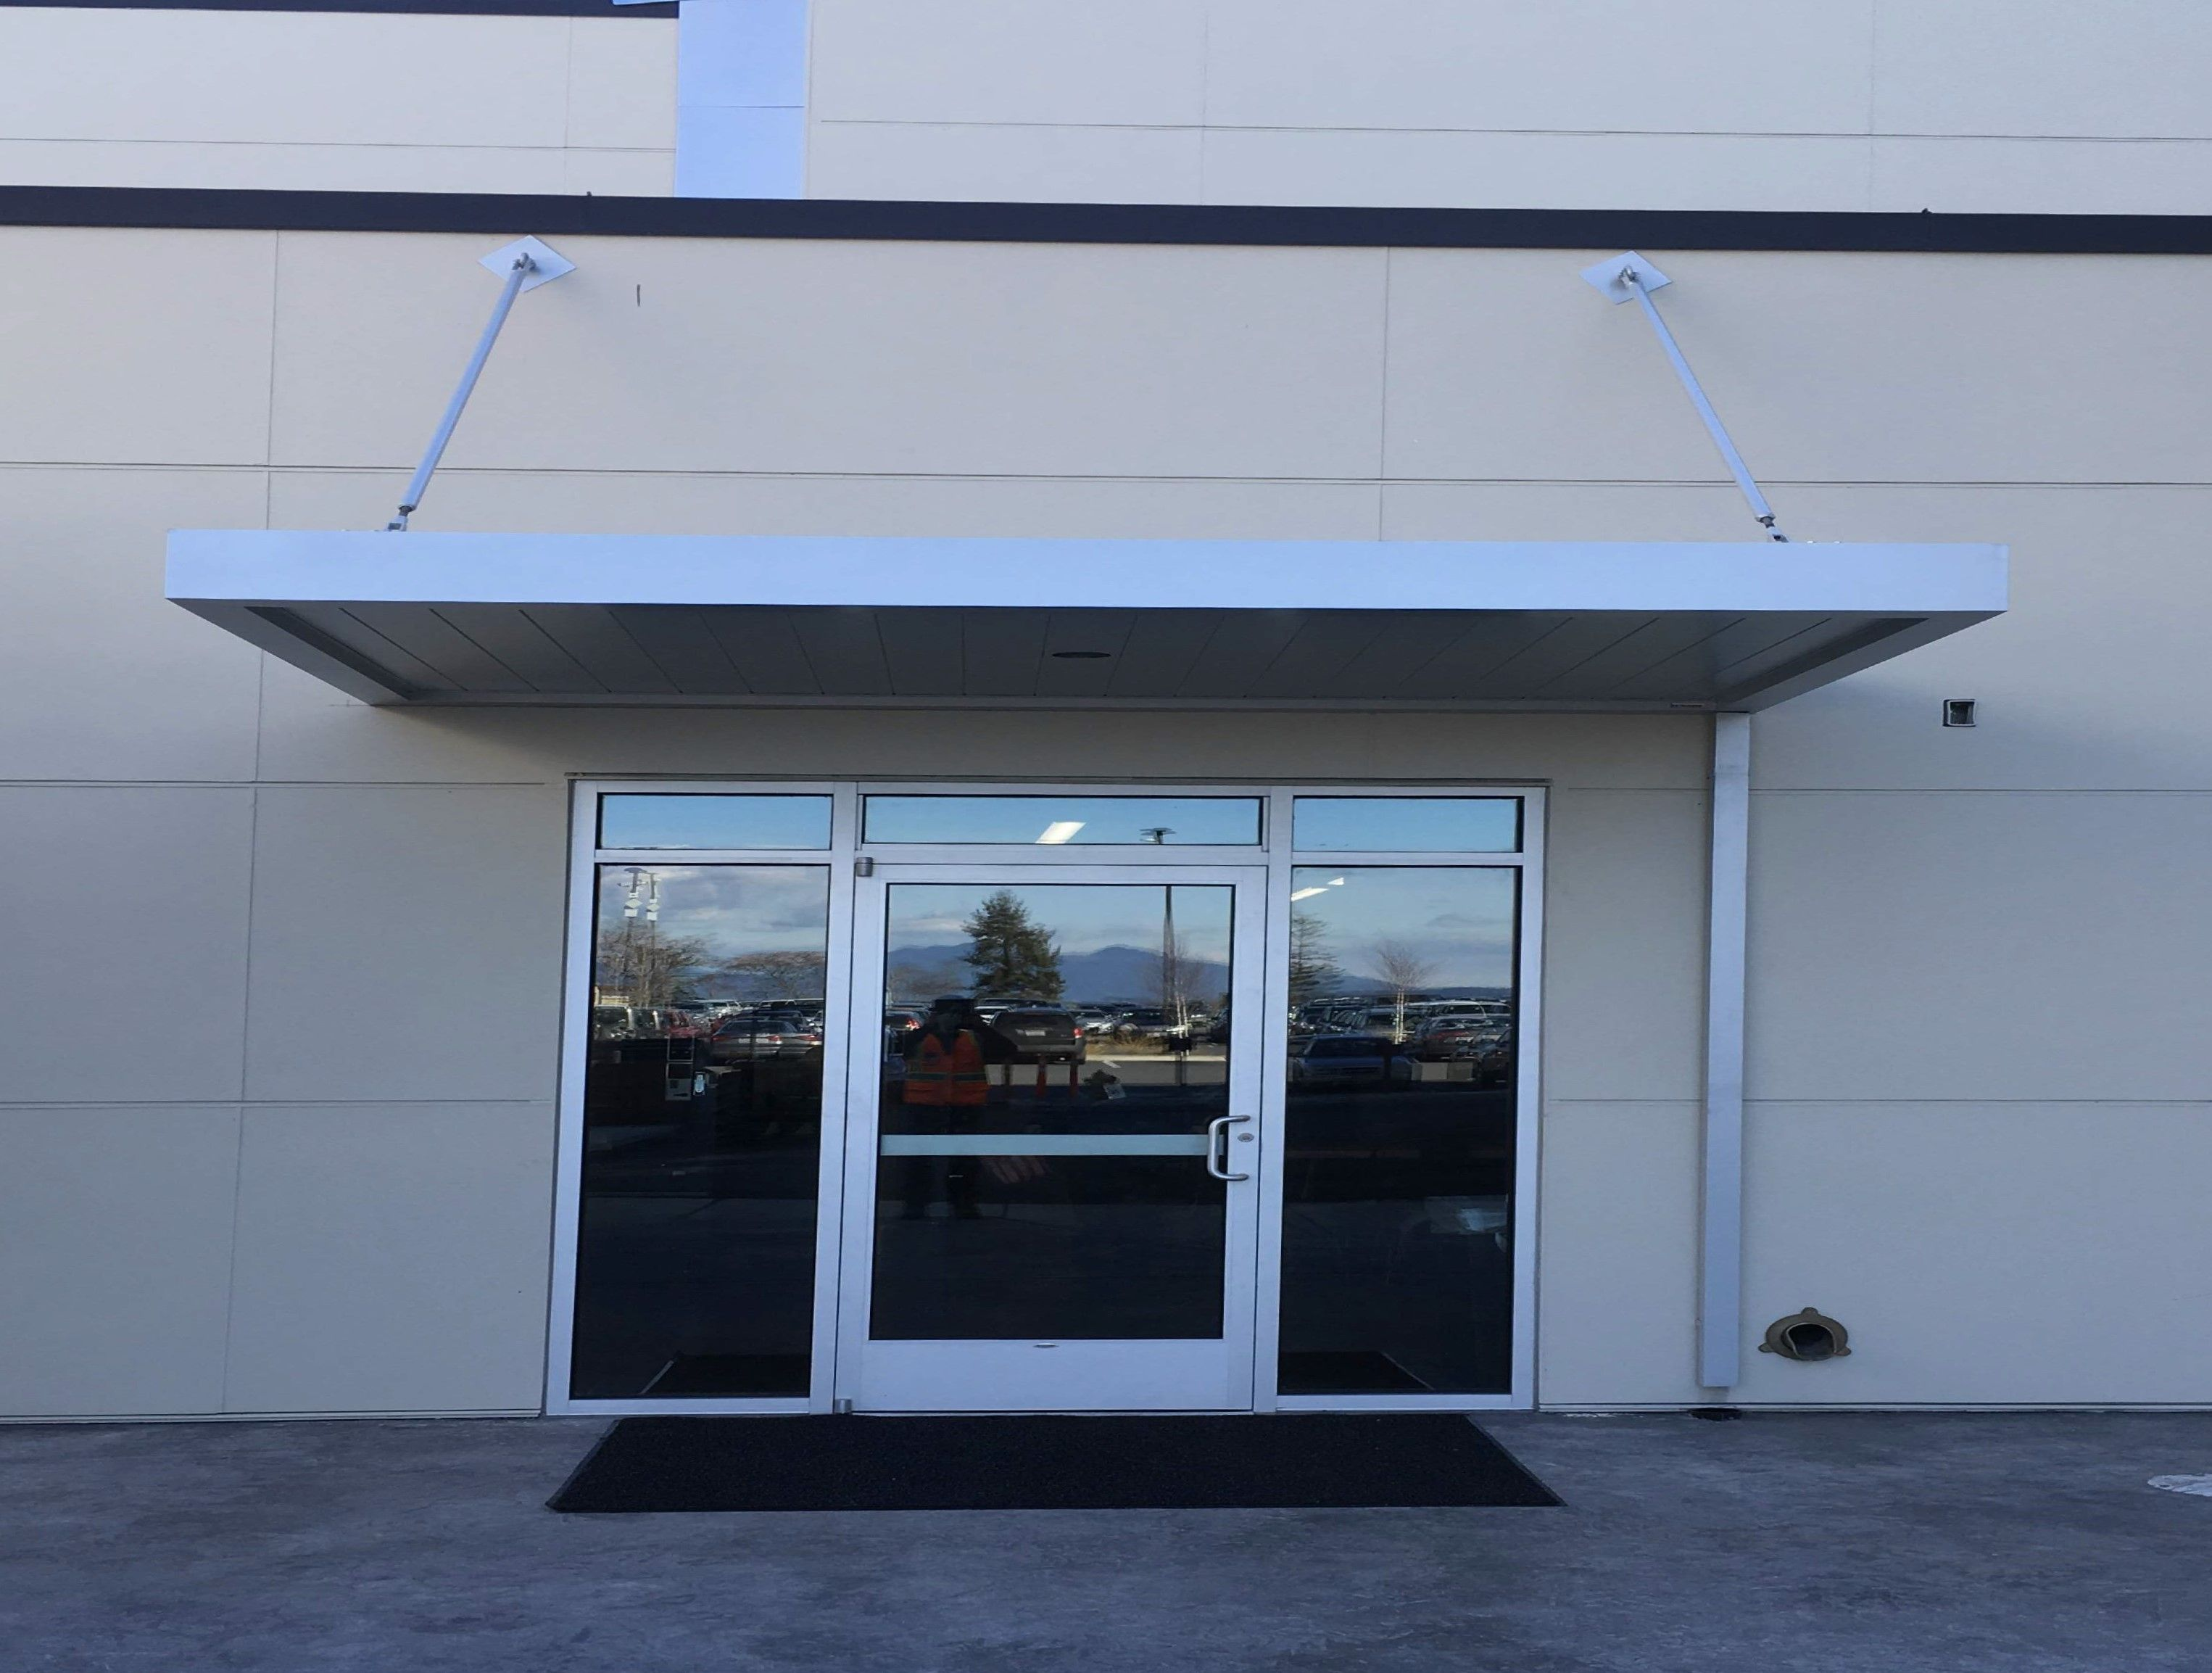 Masa Extrudeck Canopy With Lights And Downspout At Swinomish Casino In Anacortes Wa Architecture Design Metal Madeinam Awning Canopy Custom Canopy Canopy